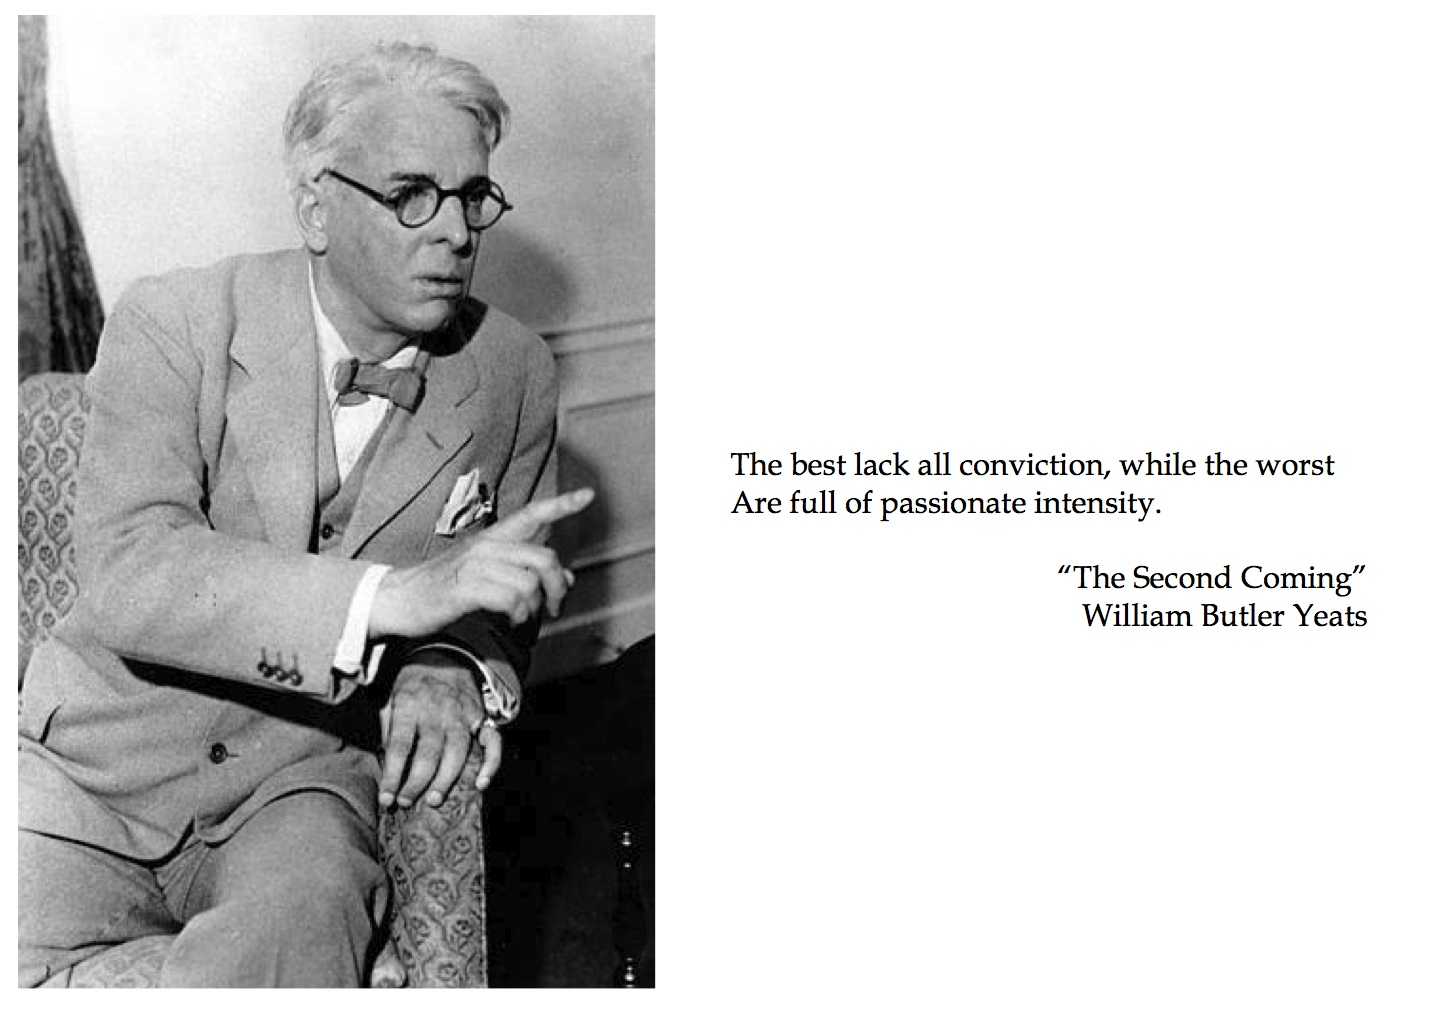 a literary analysis of the spirit in the second coming by william butler yeats A literary analysis of the poem the second coming by william butler yeats.